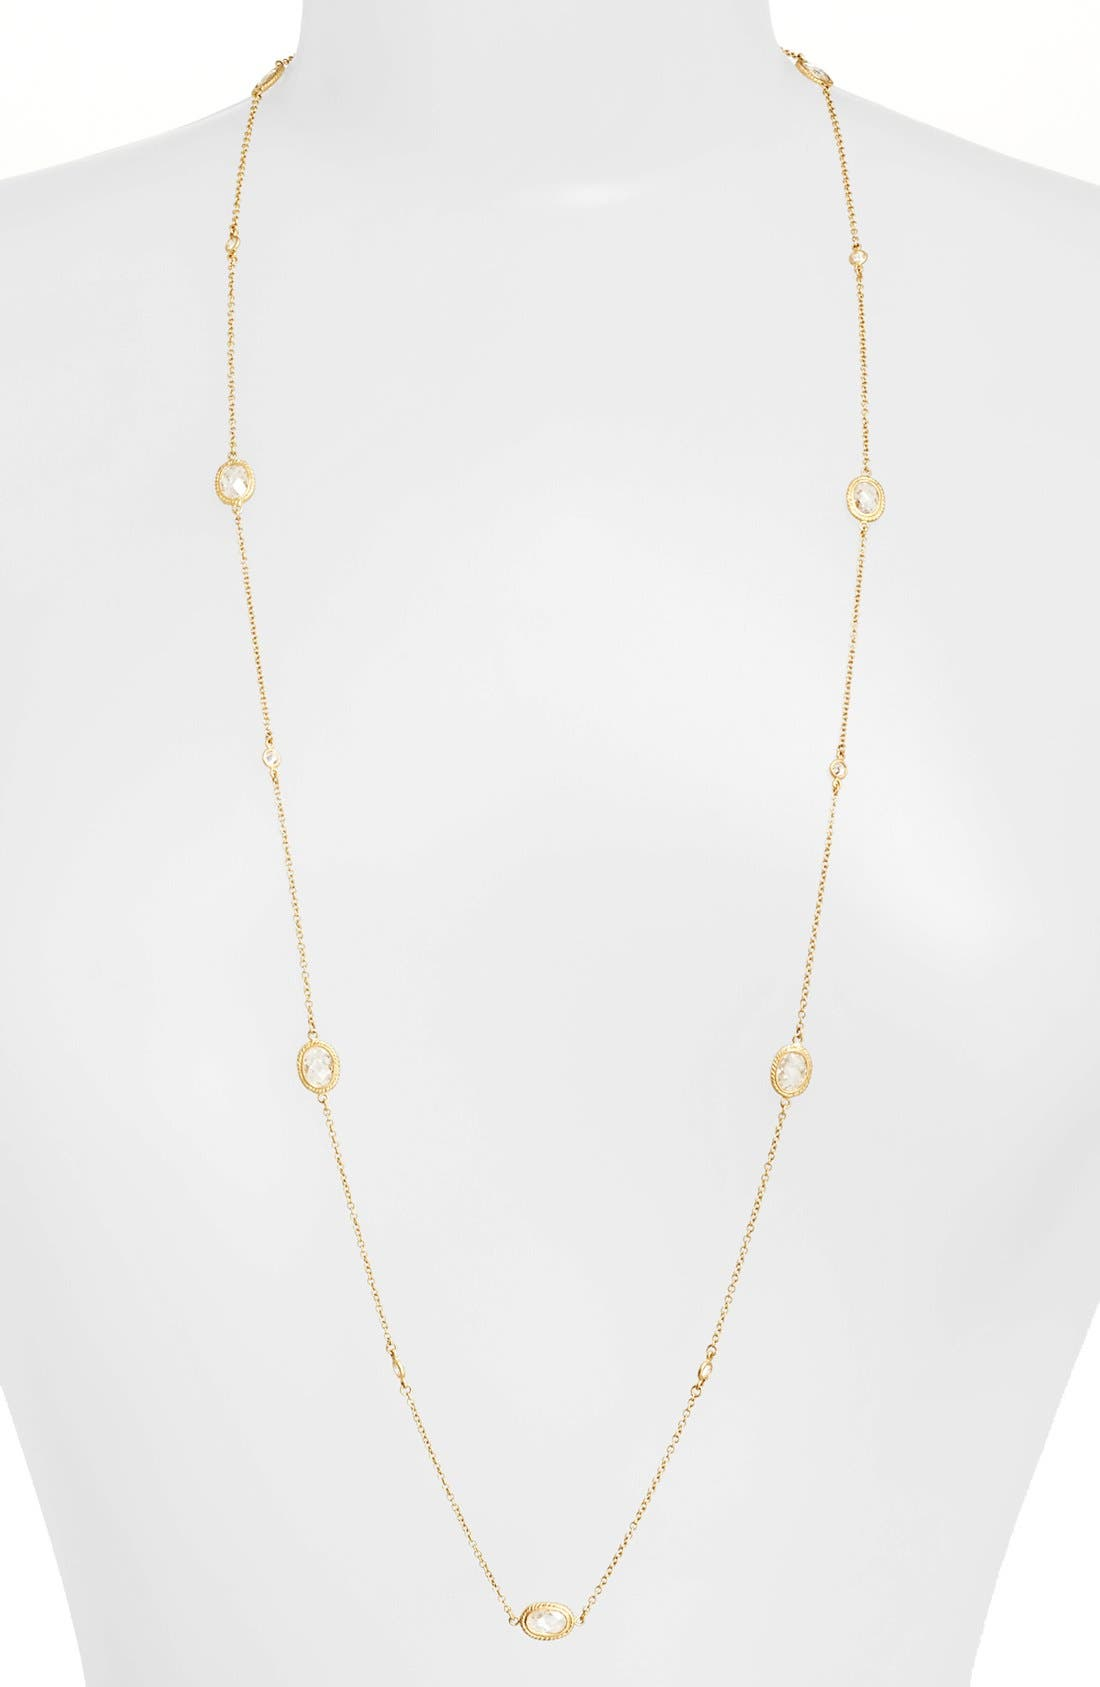 FREIDA ROTHMAN 'Mercer' Raindrop Station Long Wrap Necklace